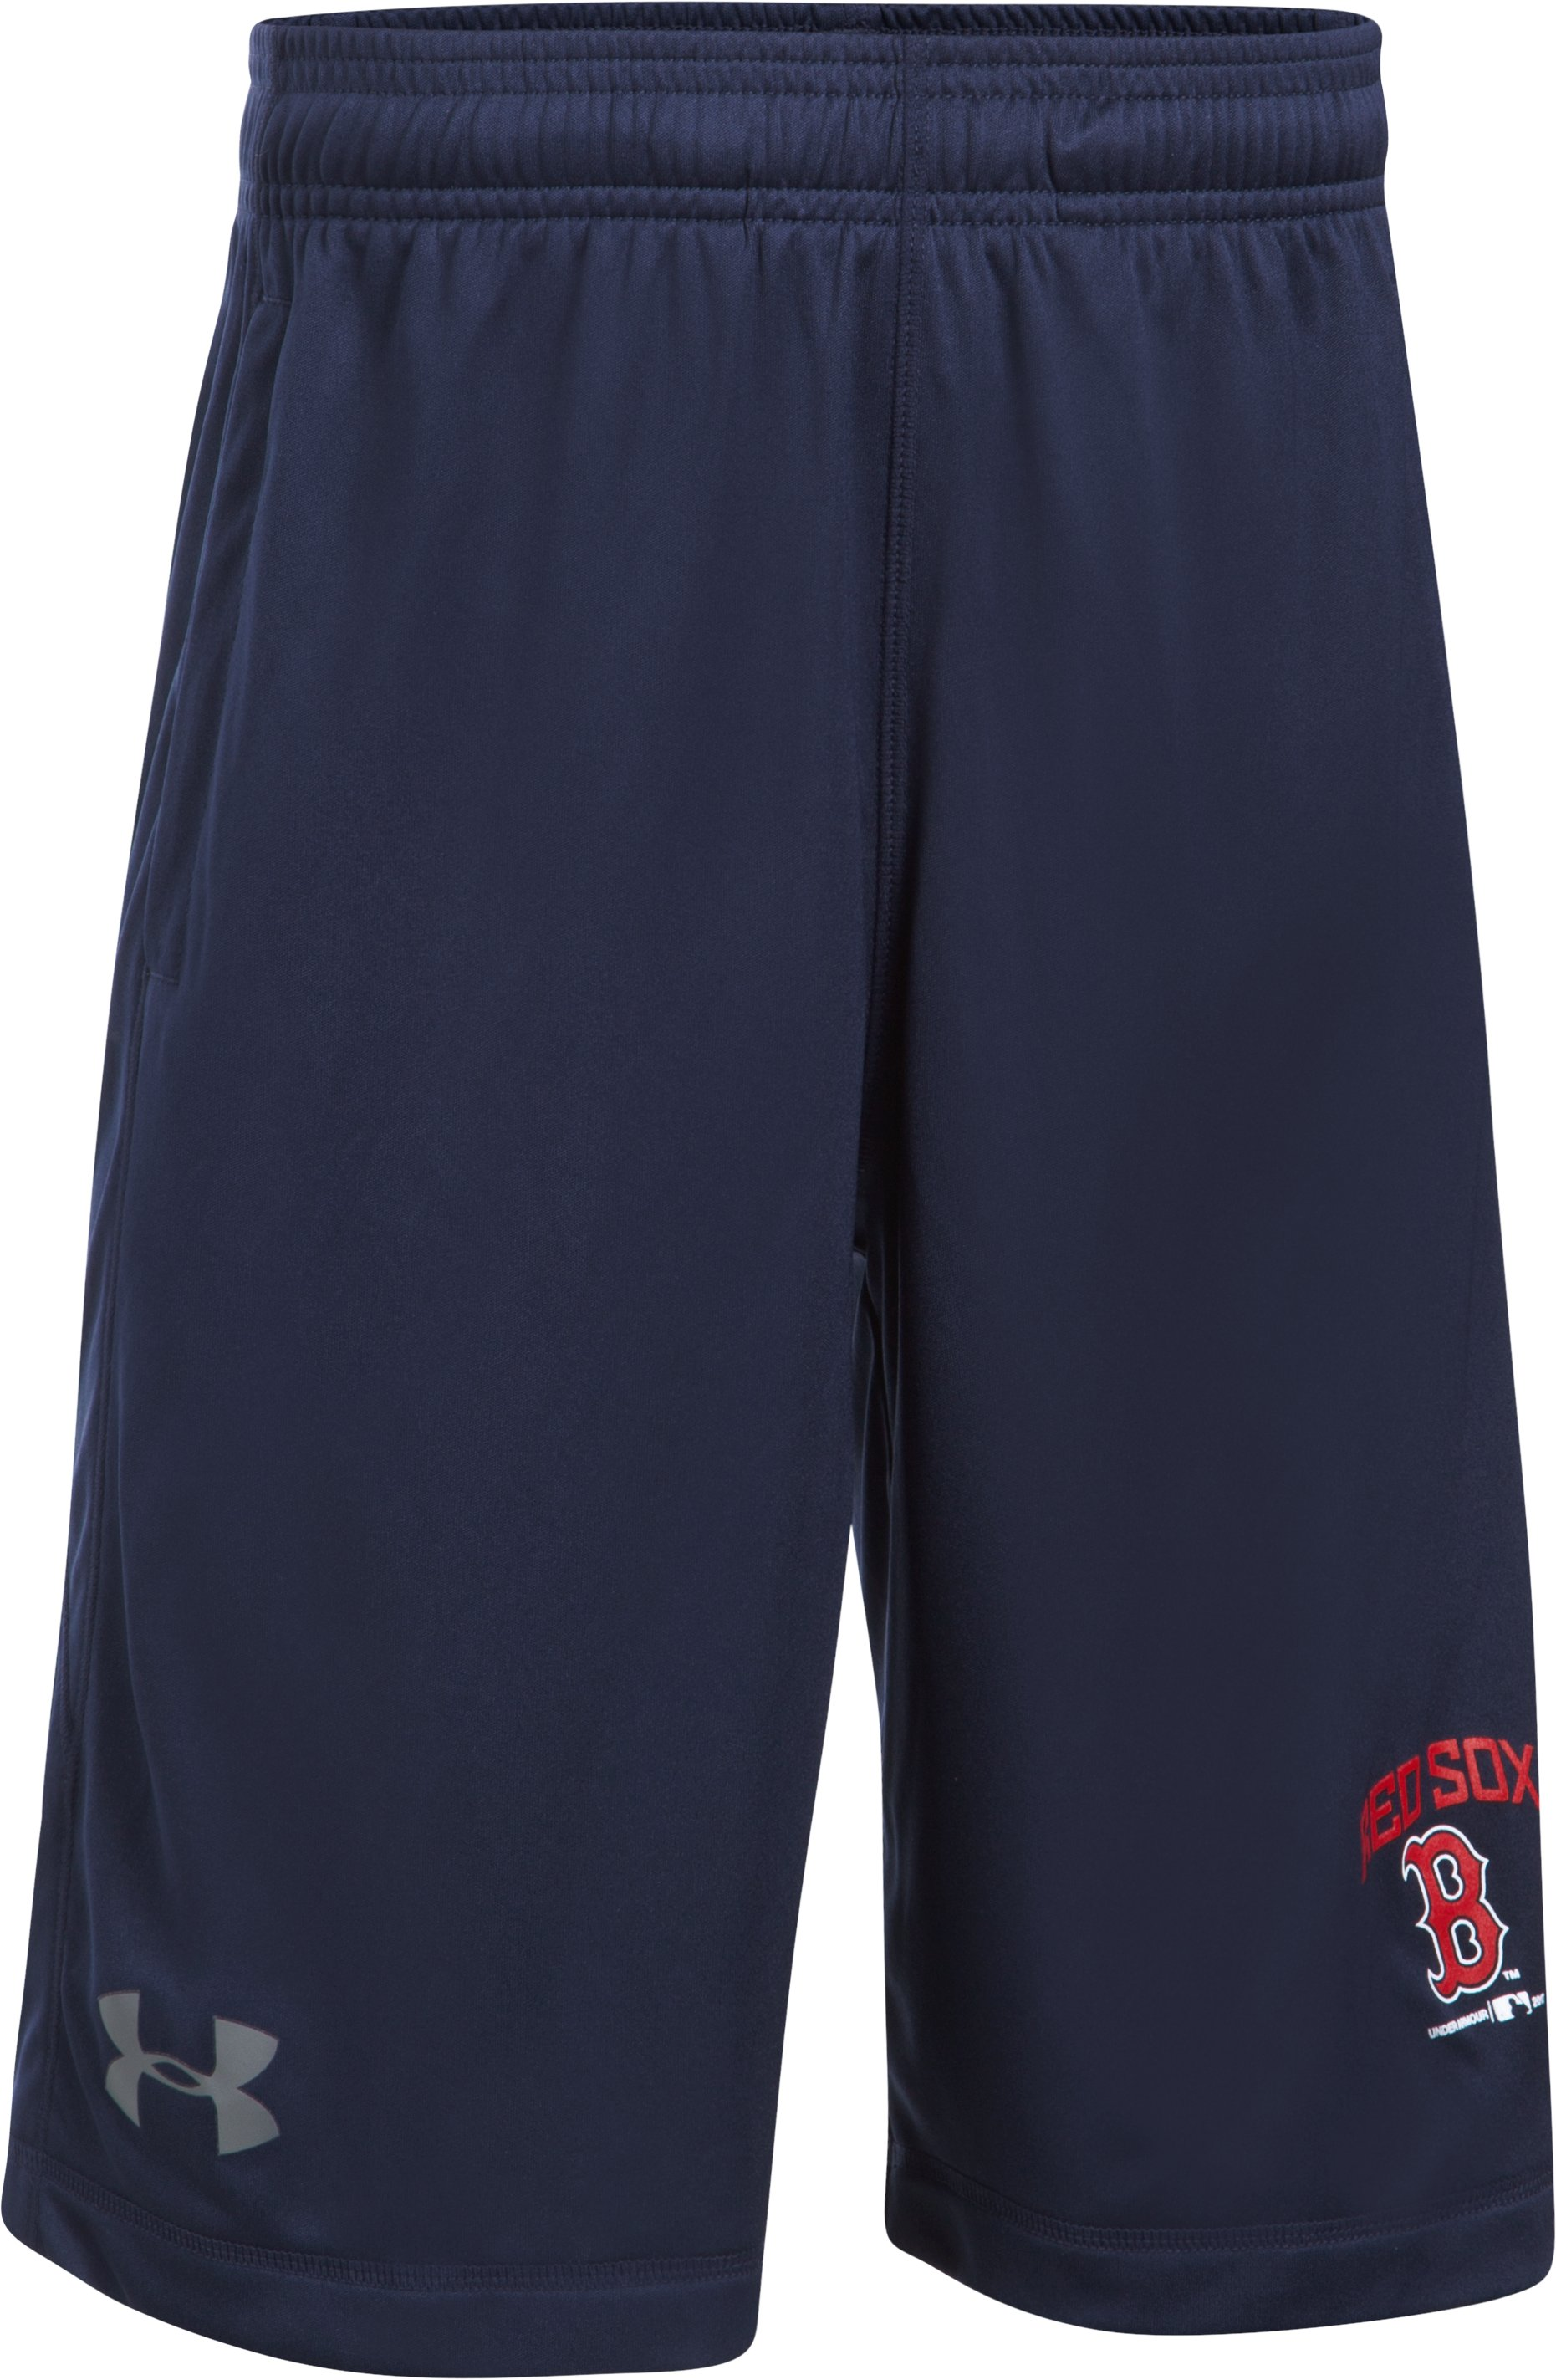 Boys' Boston Red Sox Training Shorts, Midnight Navy